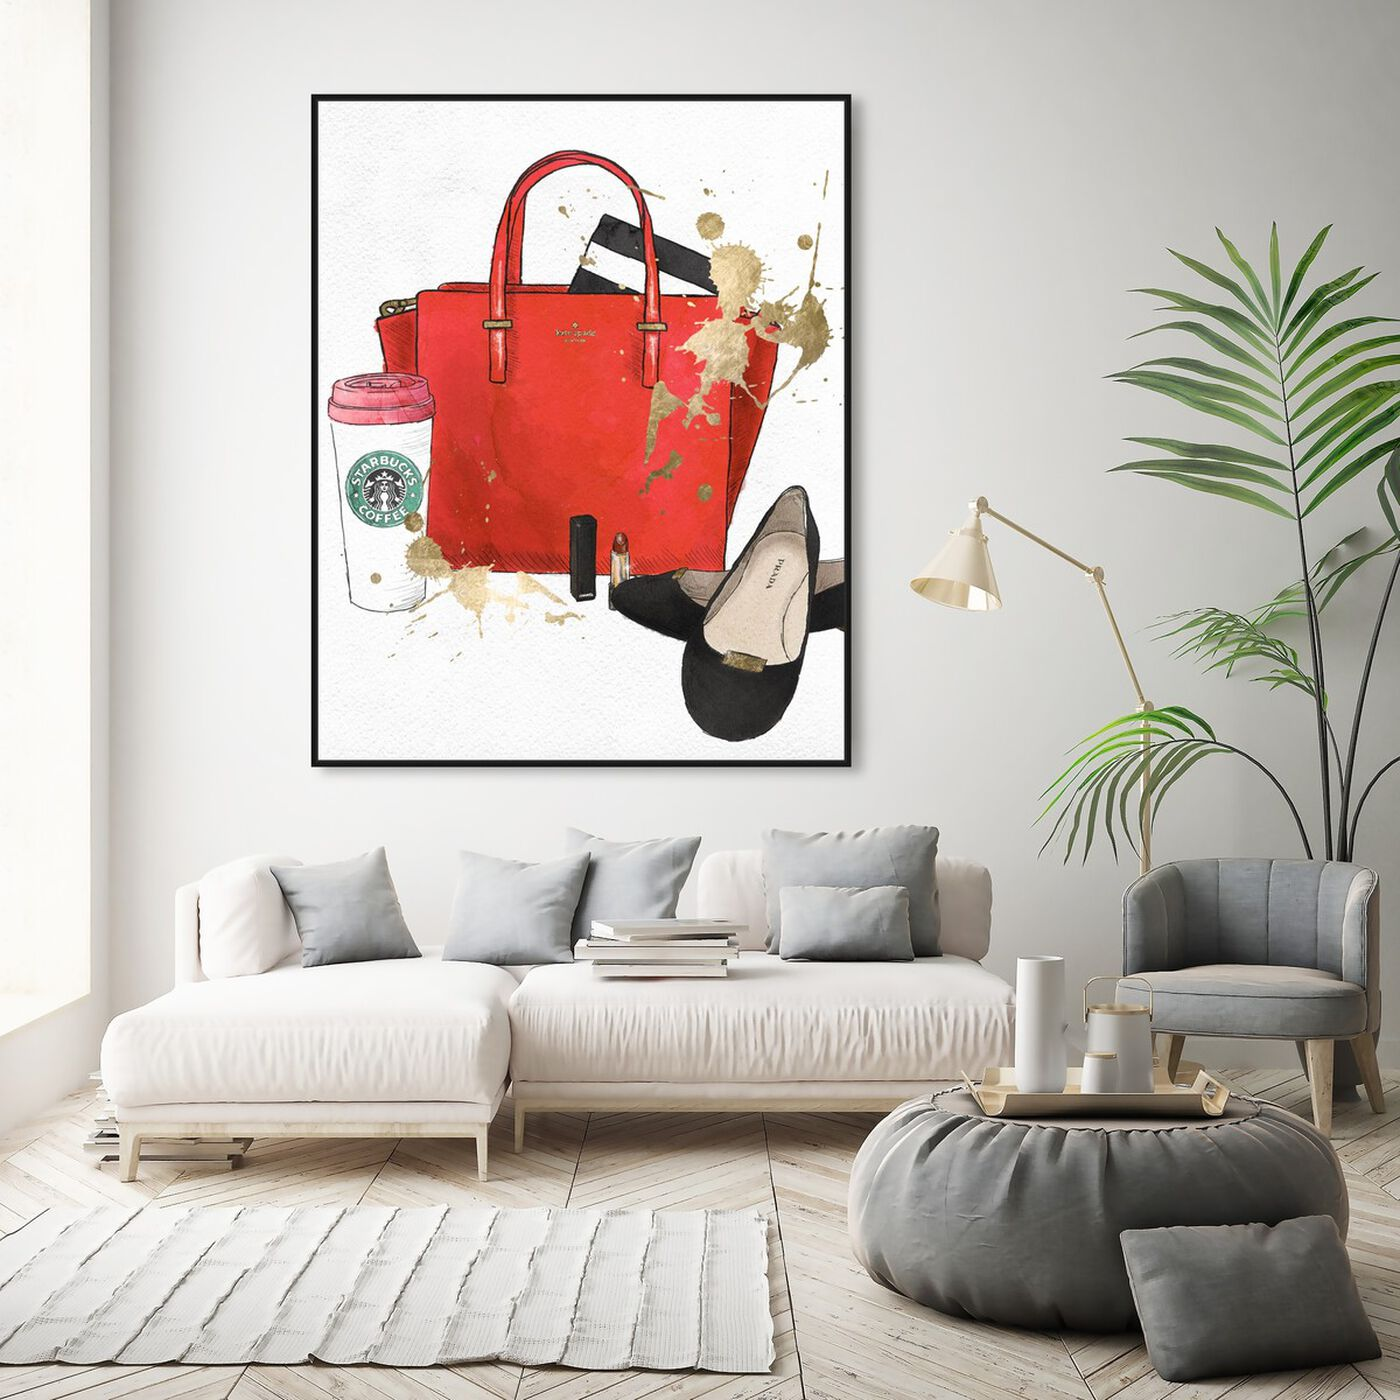 Hanging view of Bags, Shoes and Coffee Red featuring fashion and glam and essentials art.